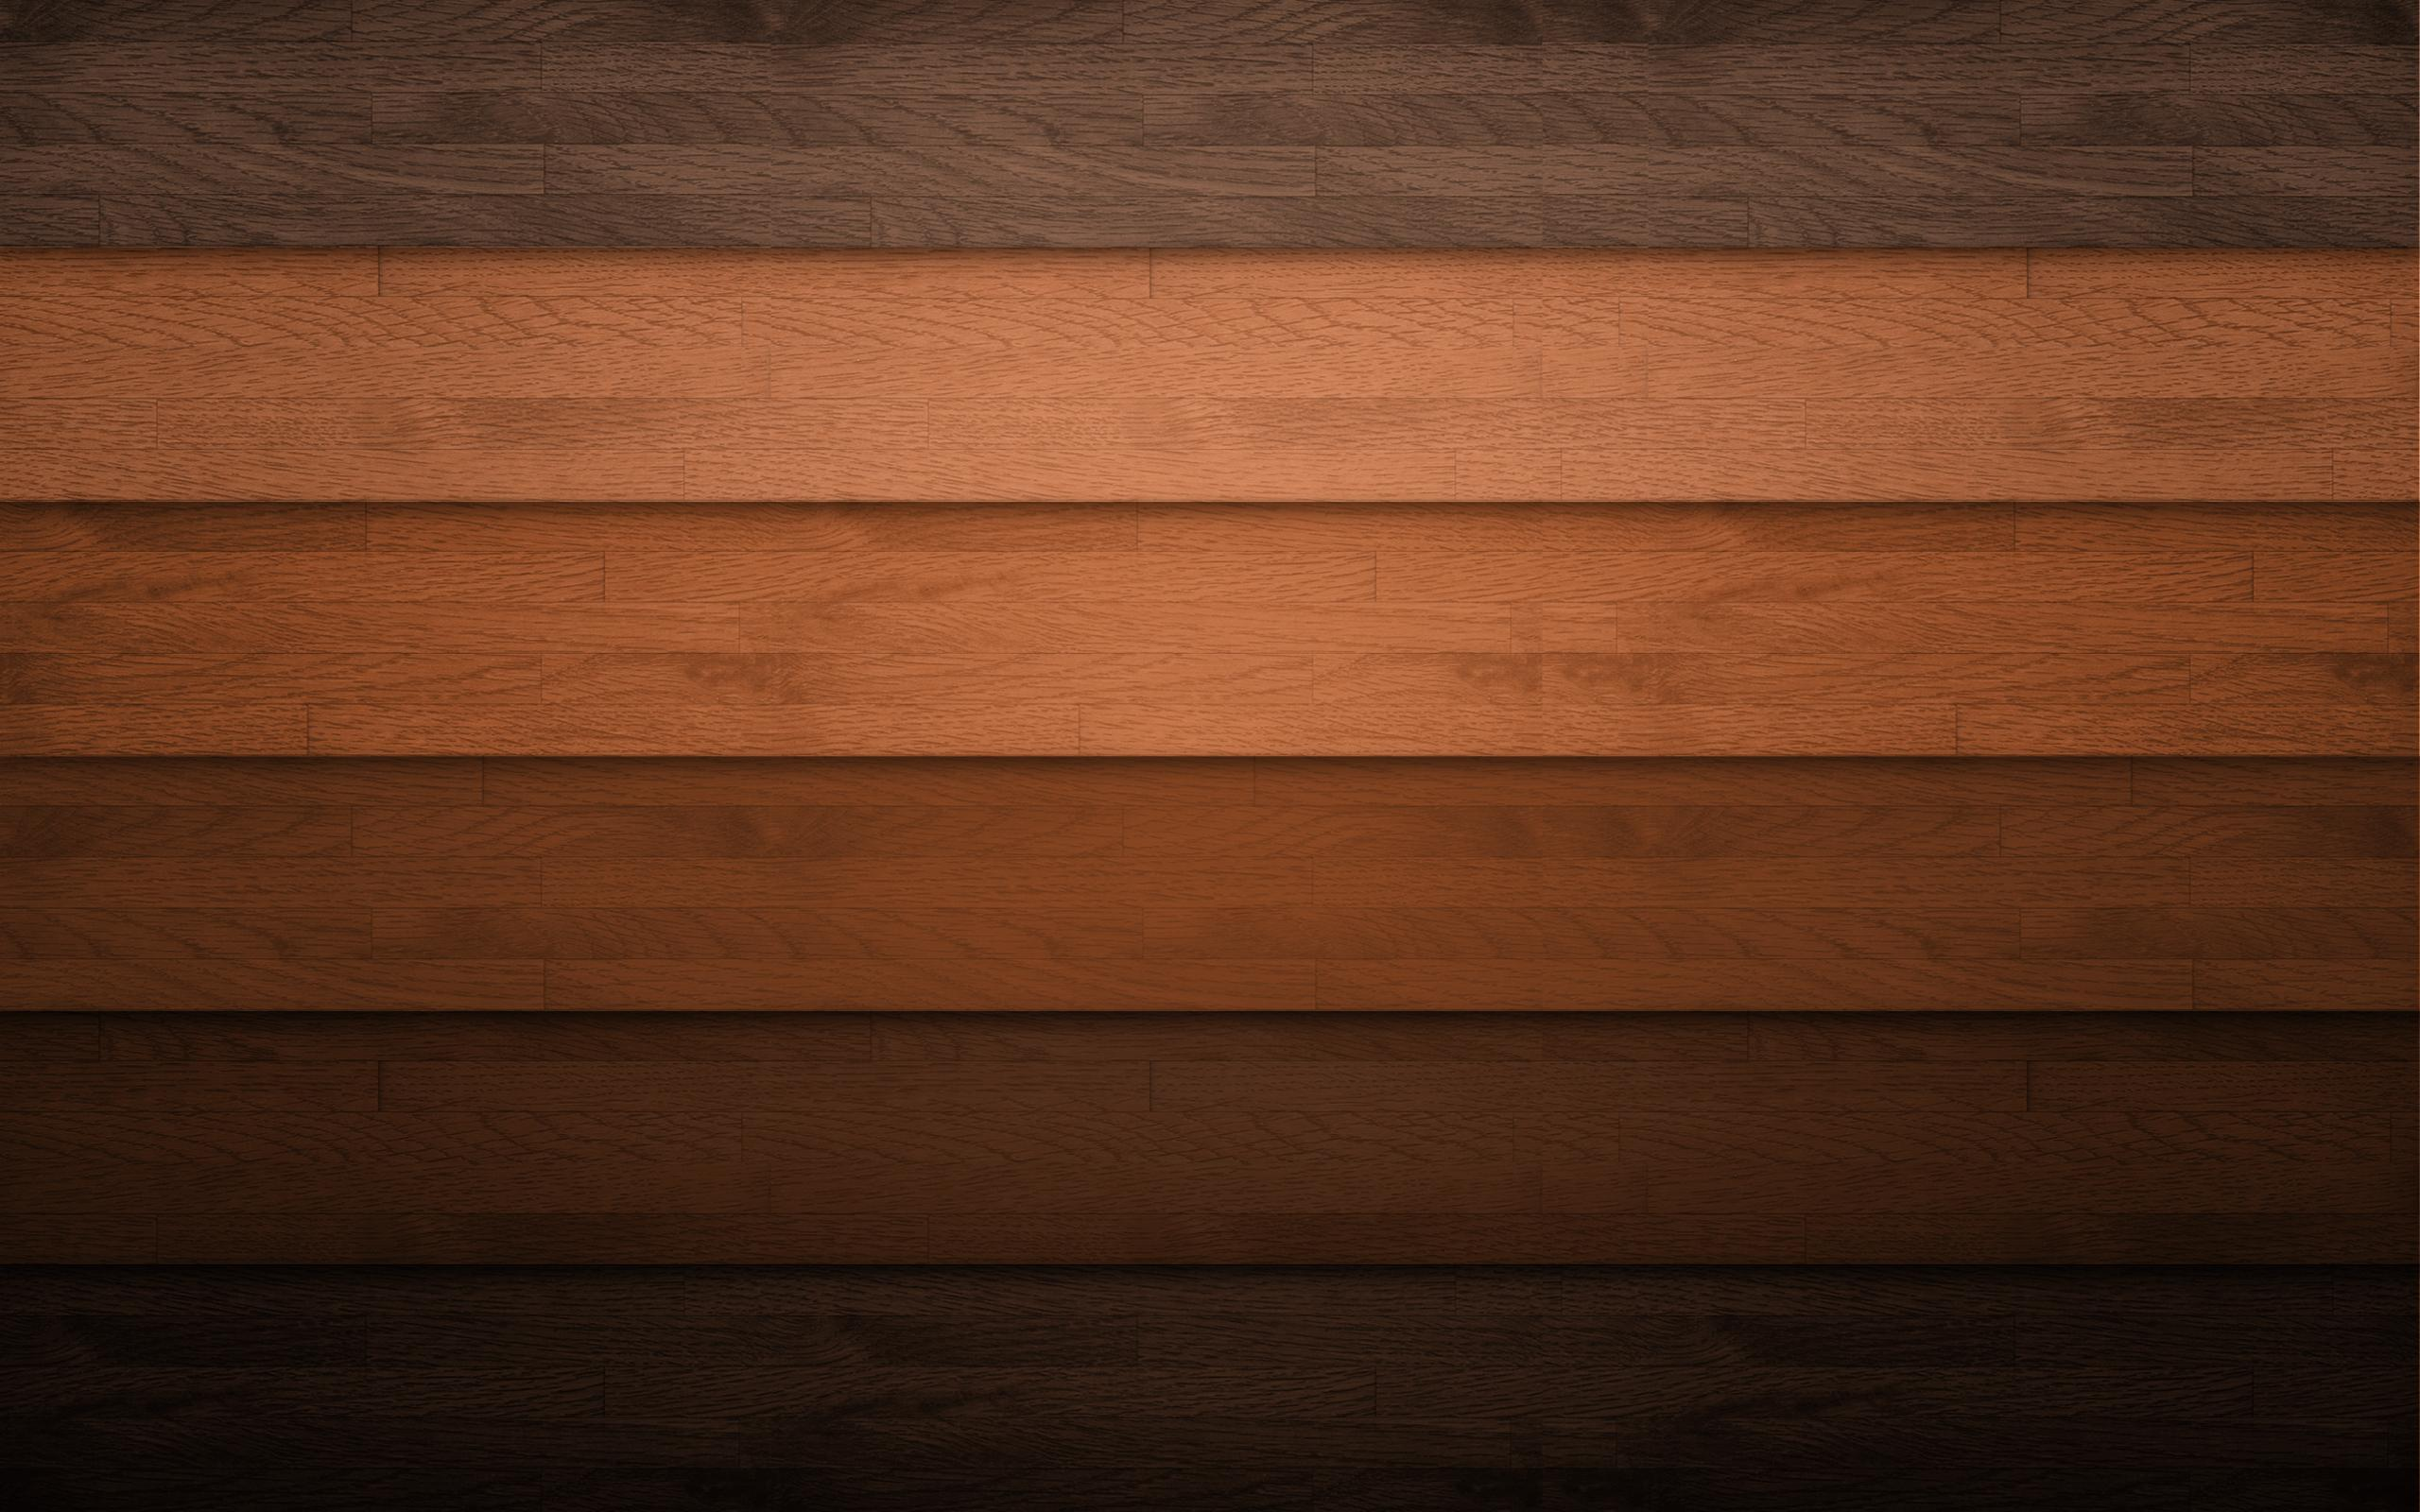 Wood table background hd - Hd Wood 2 Wallpapers And Background